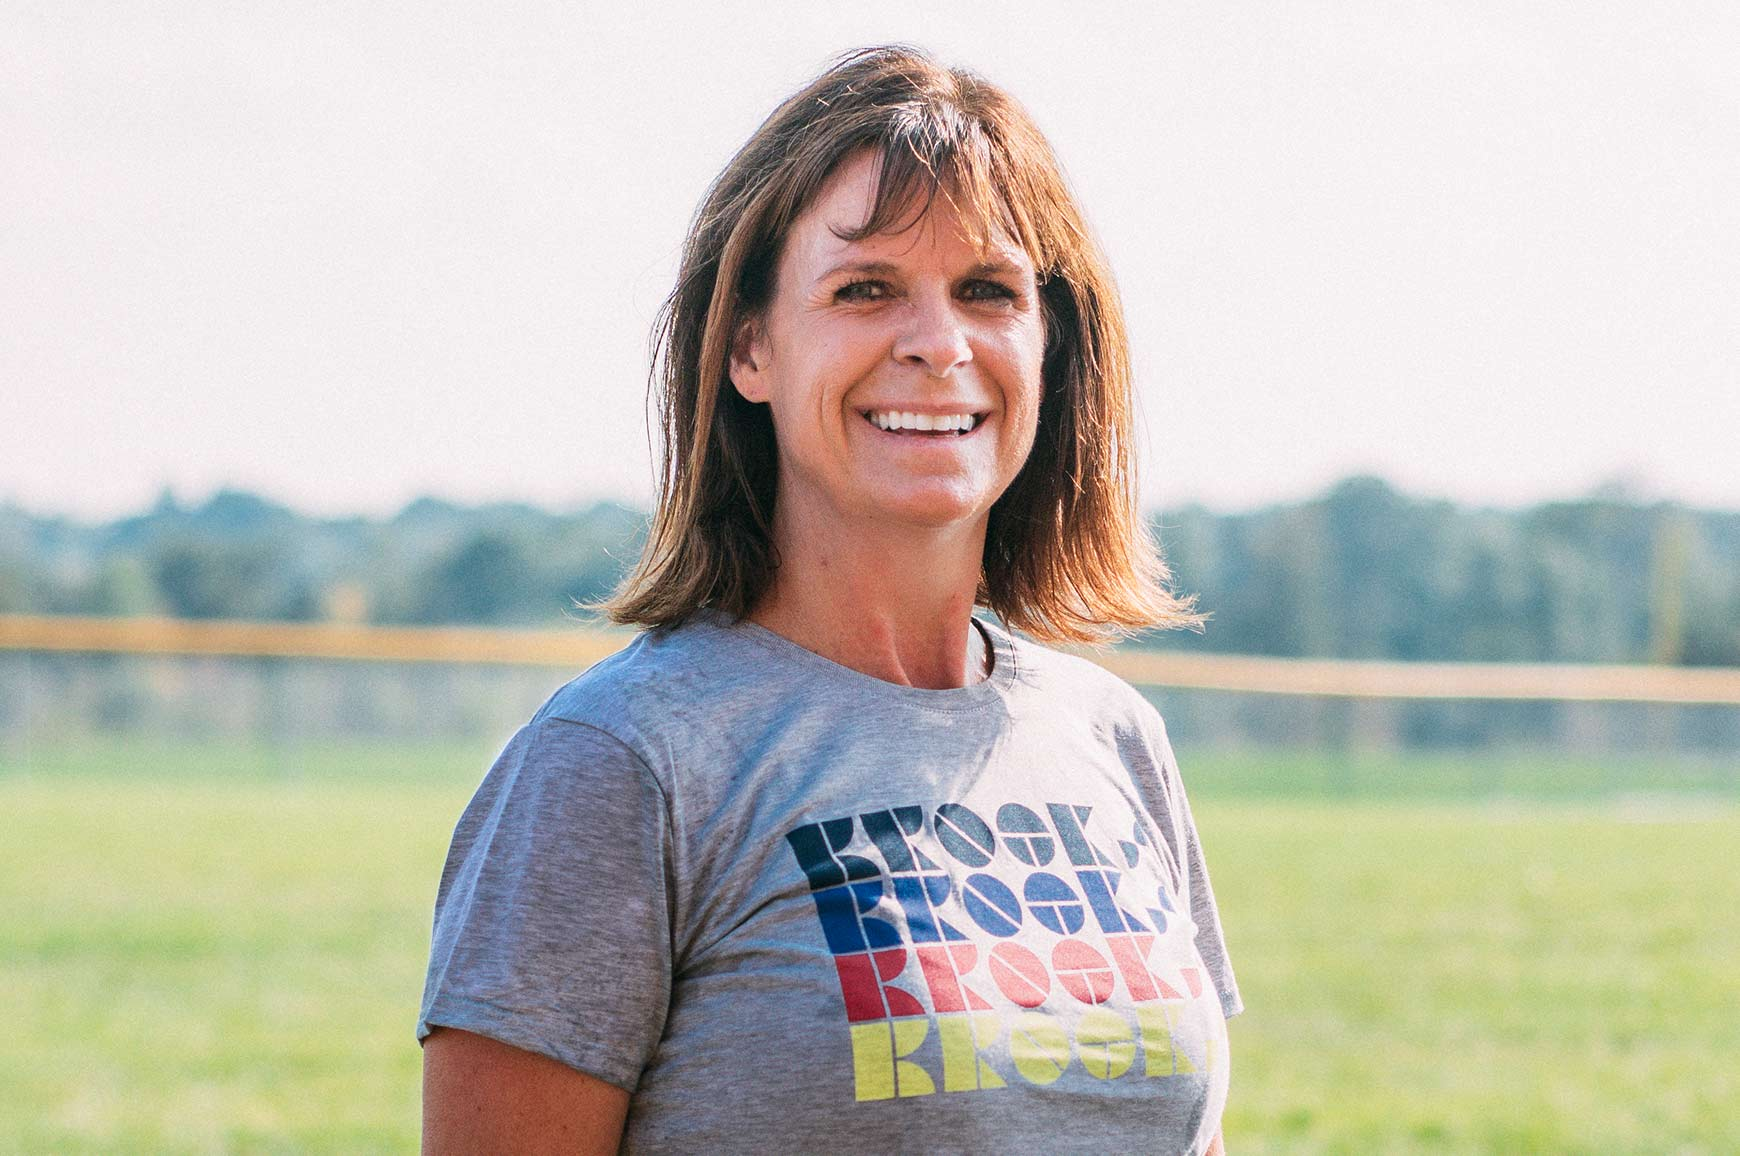 Denise Benson facing the camera and smiling; the background is of a field and the sun is out